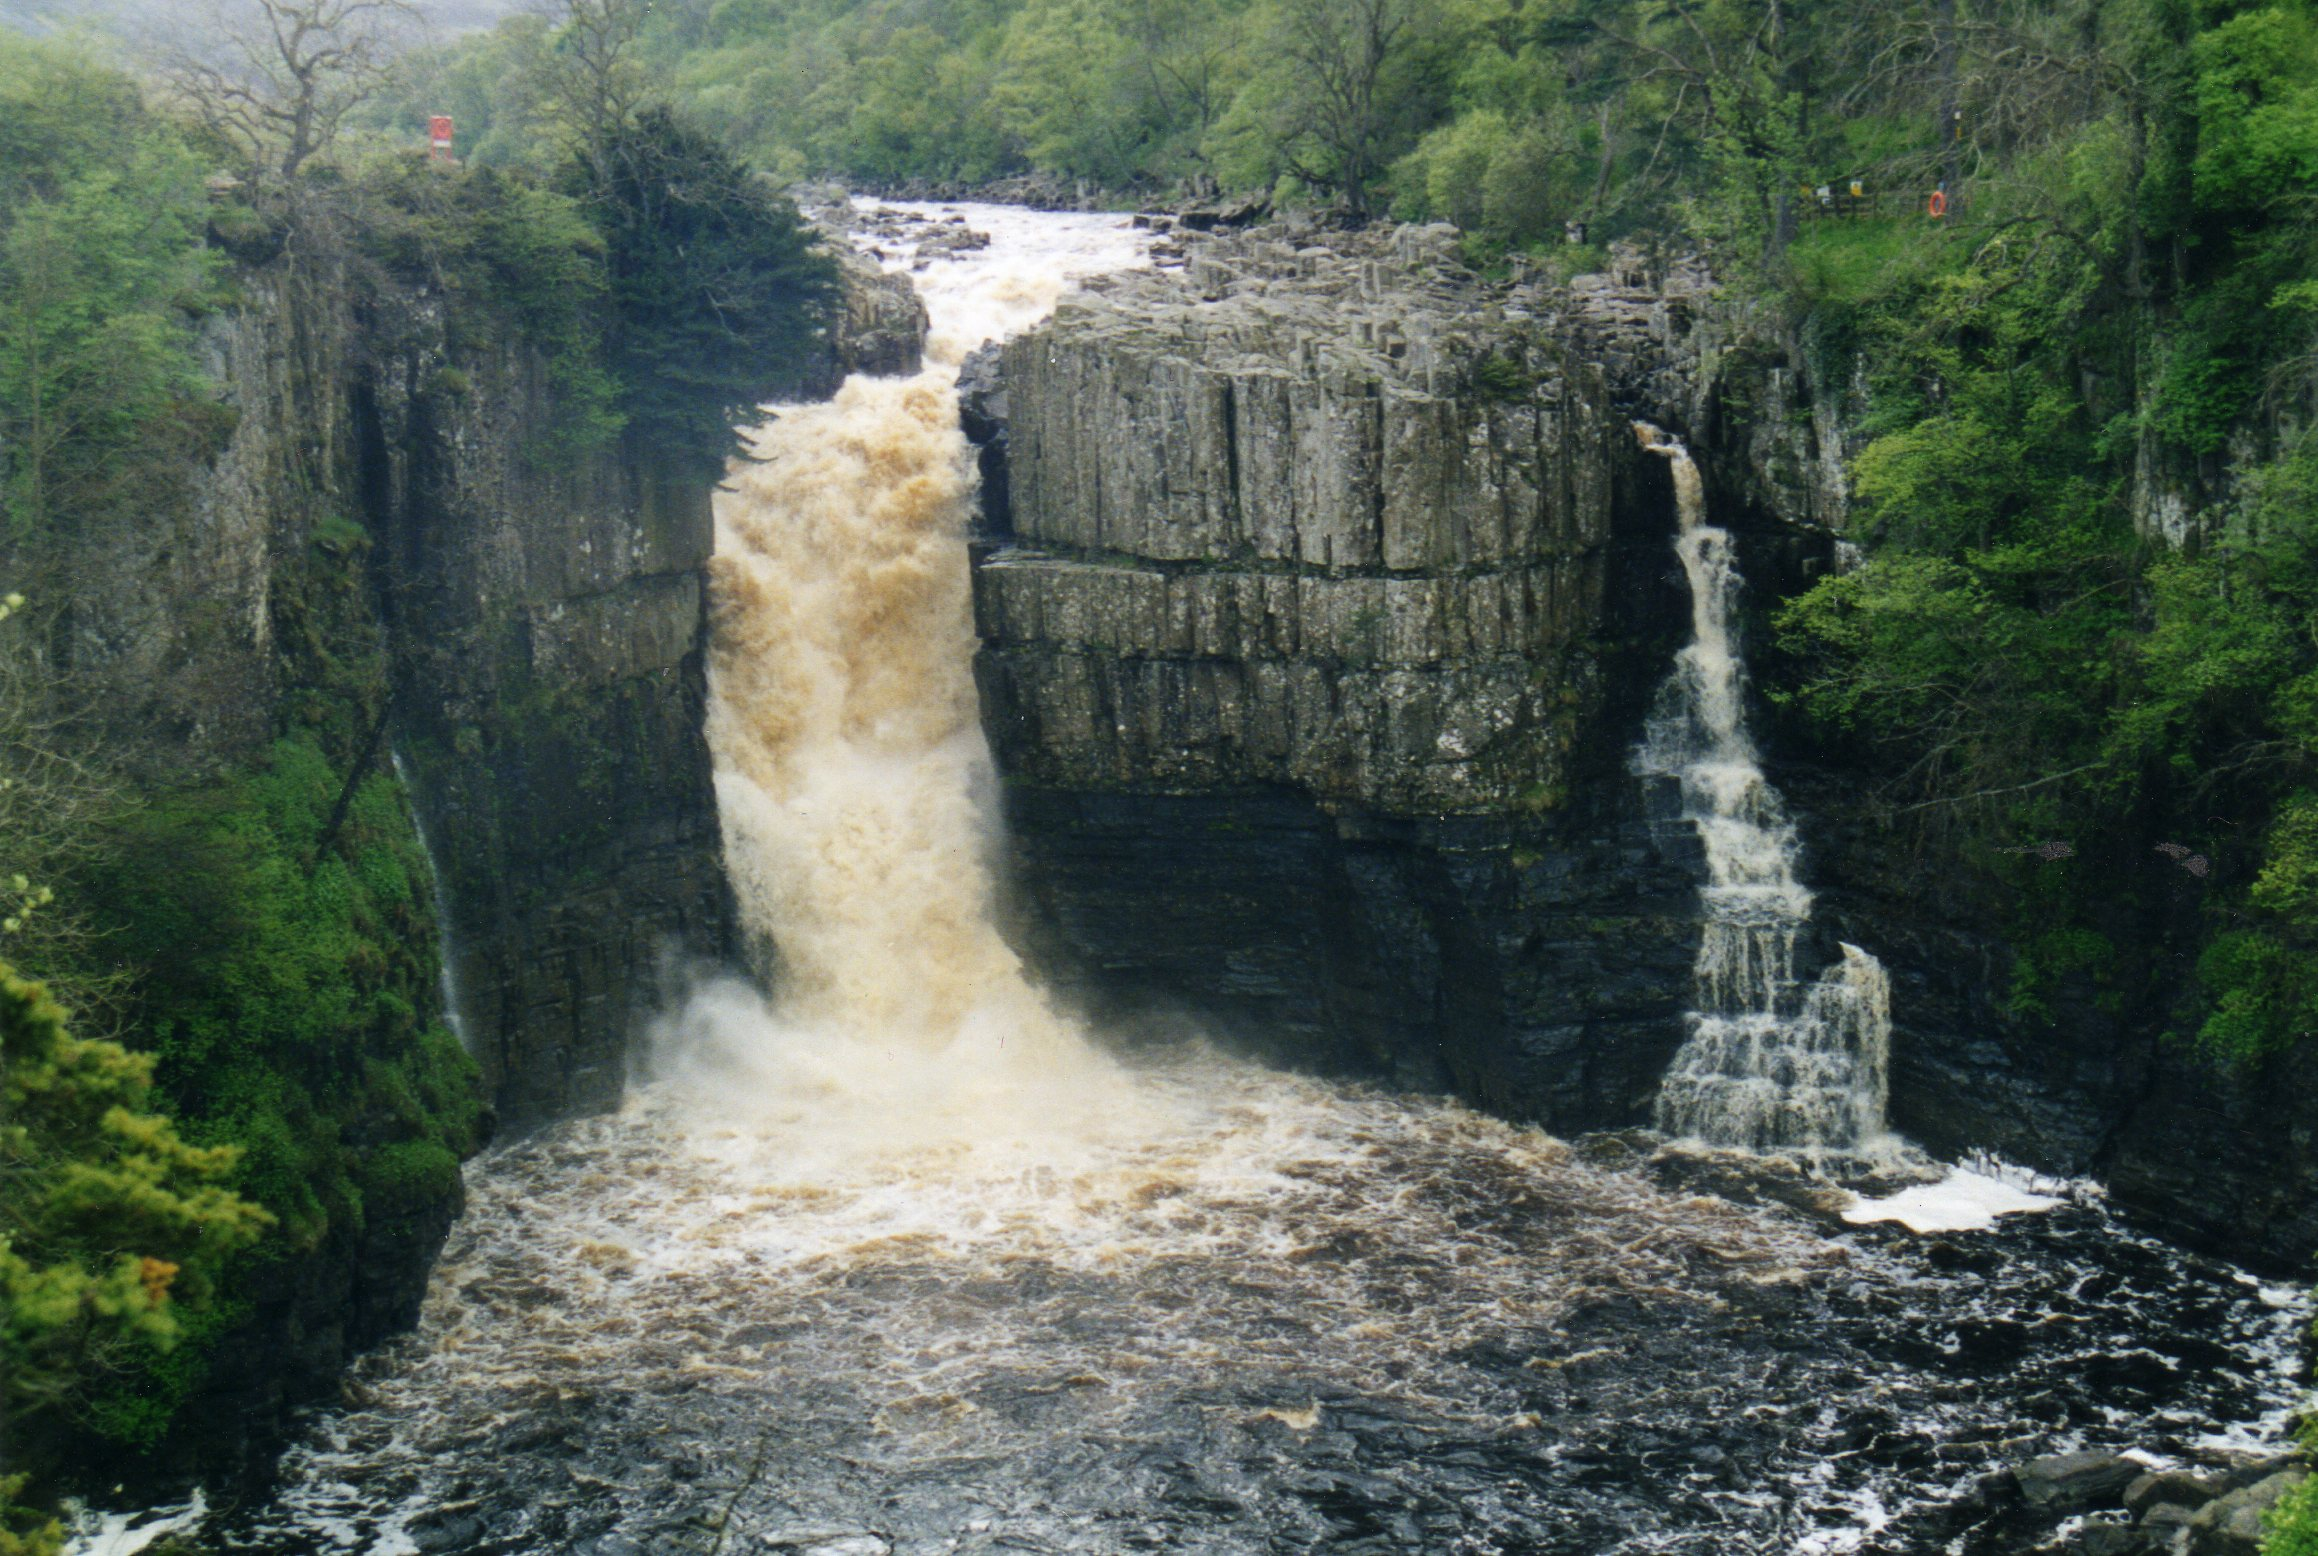 The rugged beauty of High Force